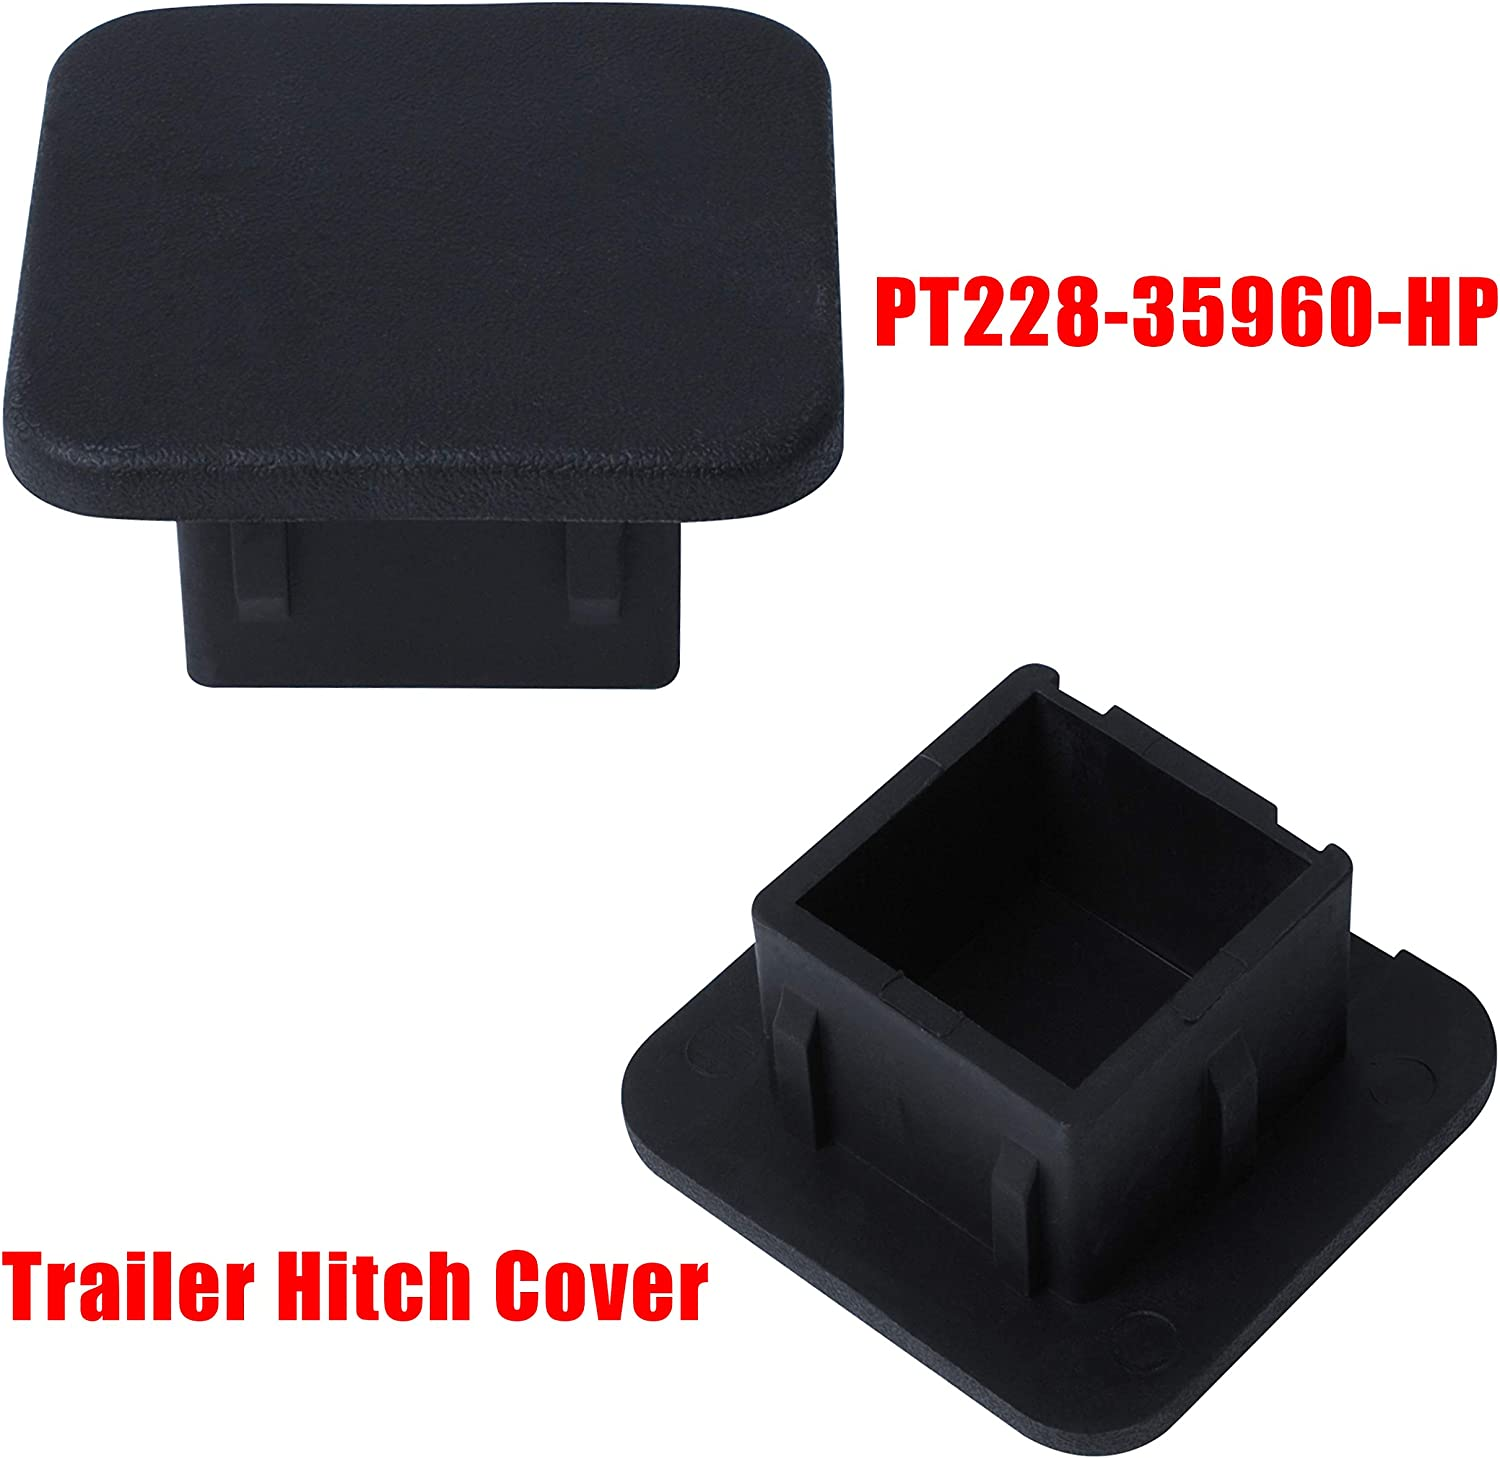 wadoy PT228-35960-HP Trailer Hitch Cover 2 Pack Cover Replacement for Toyota Accessories Receiver Tube Hitch Plug